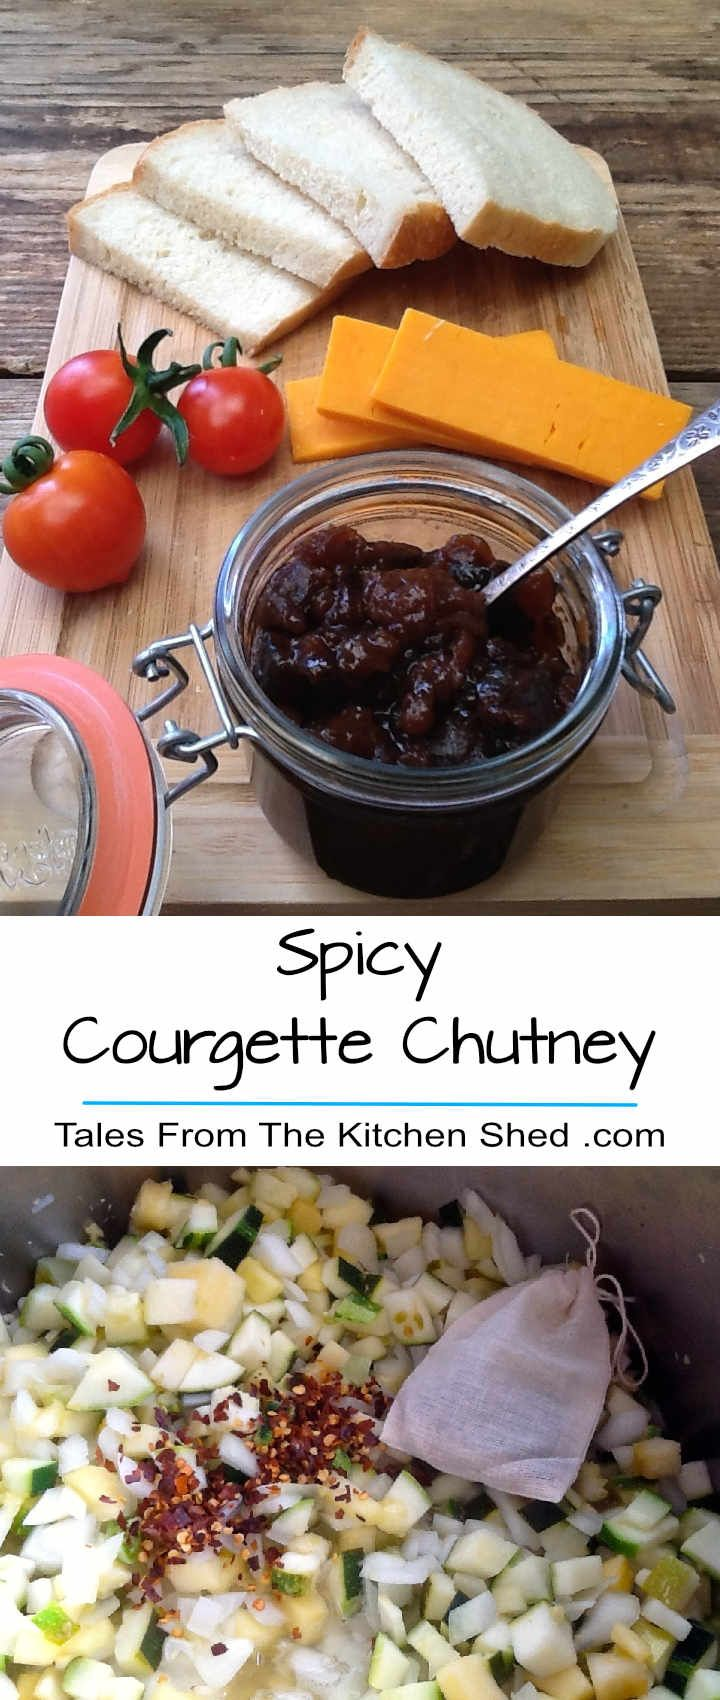 Spicy Courgette Chutney is delicious with cheese, cold meats & perfect for a cheese & pickle sandwich. Spiced with coriander, ginger, mustard…